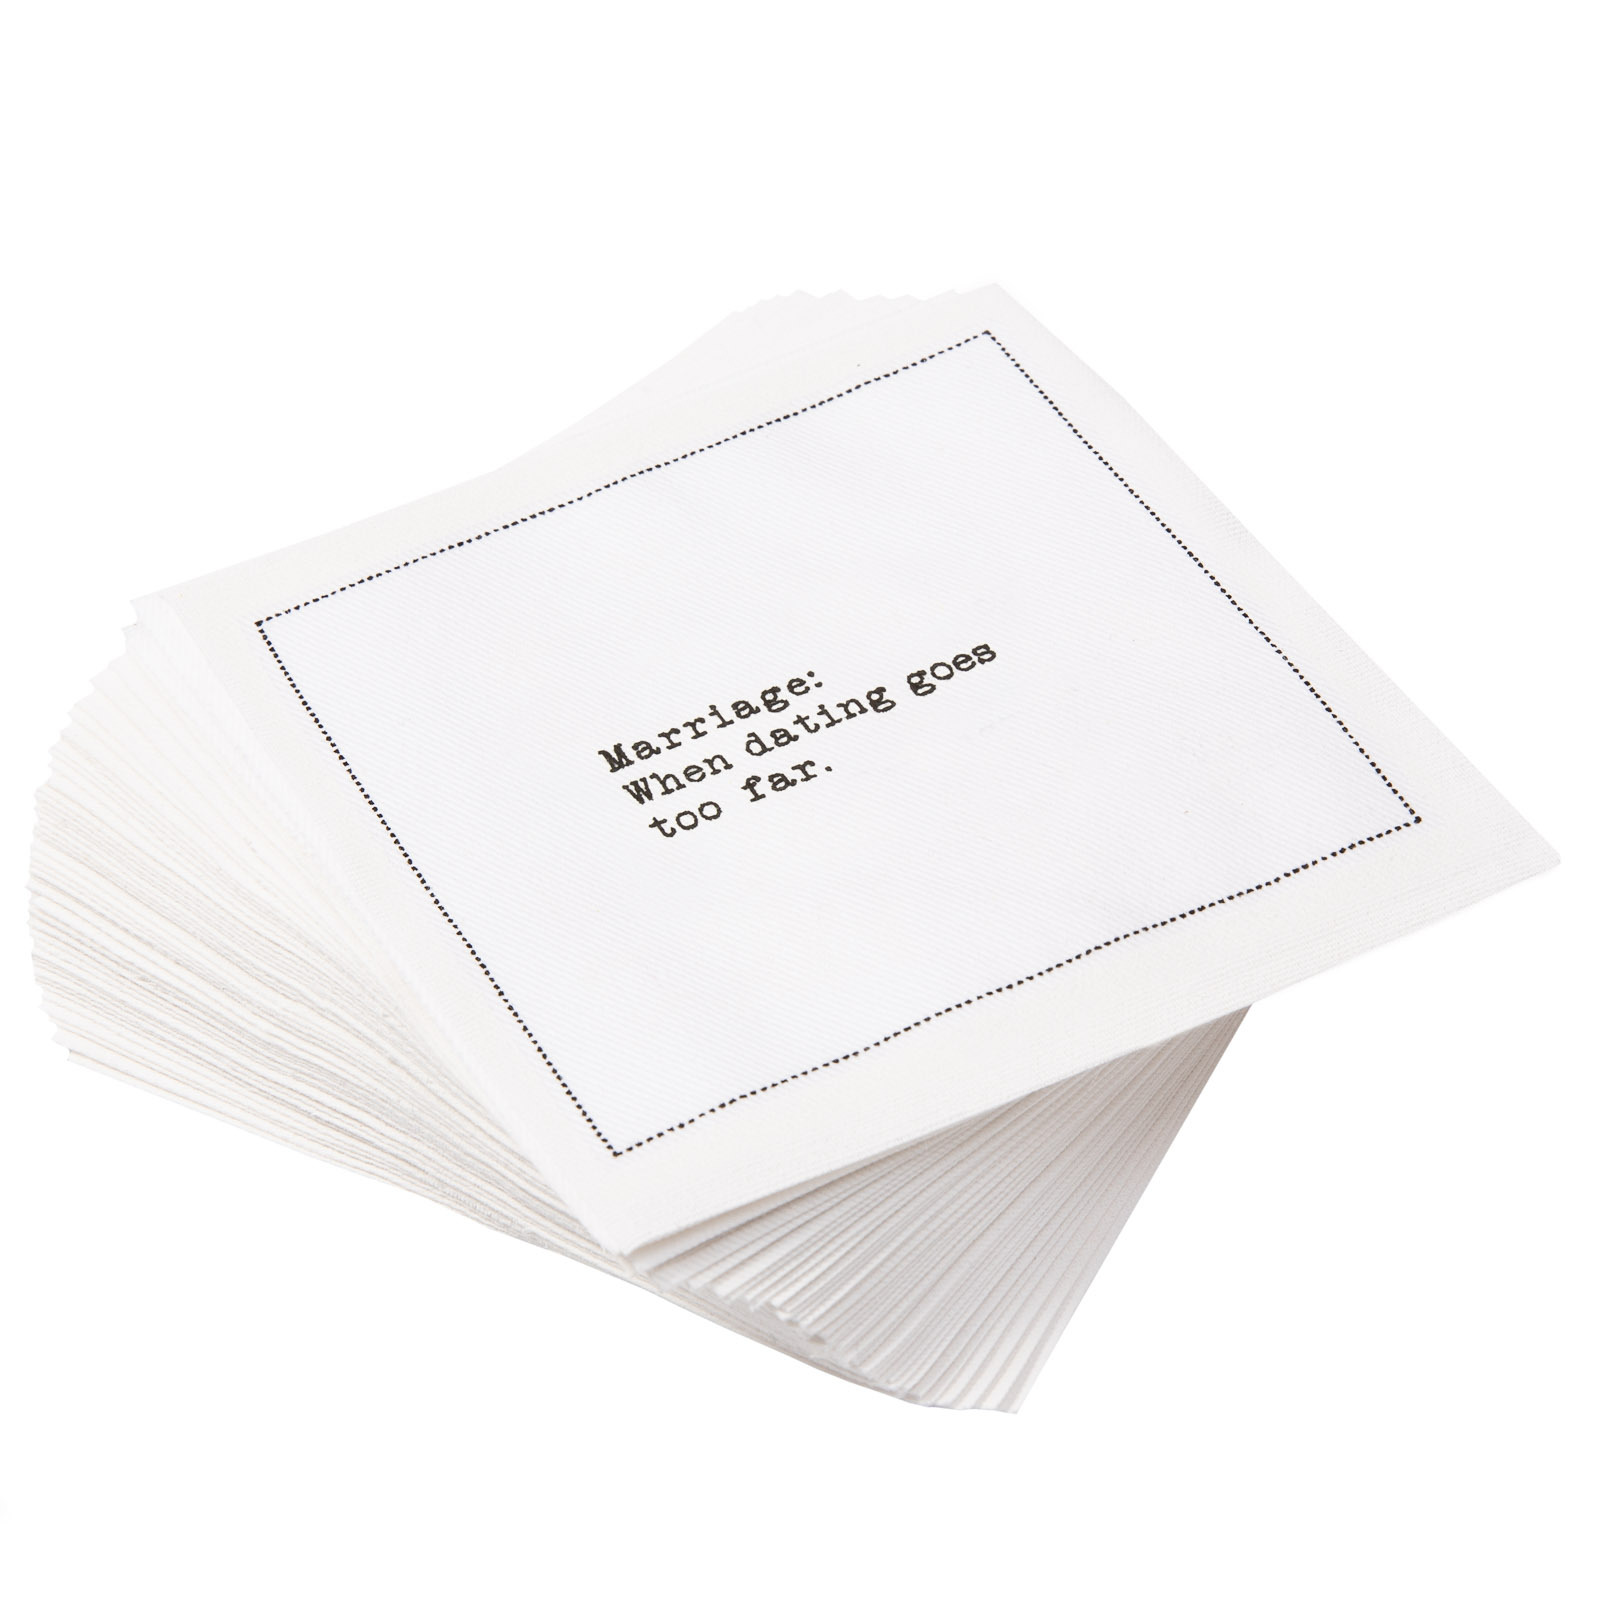 "White Cotton Cocktail with Marriage Quotes - 4.5"" x 4.5"" - 50 units"